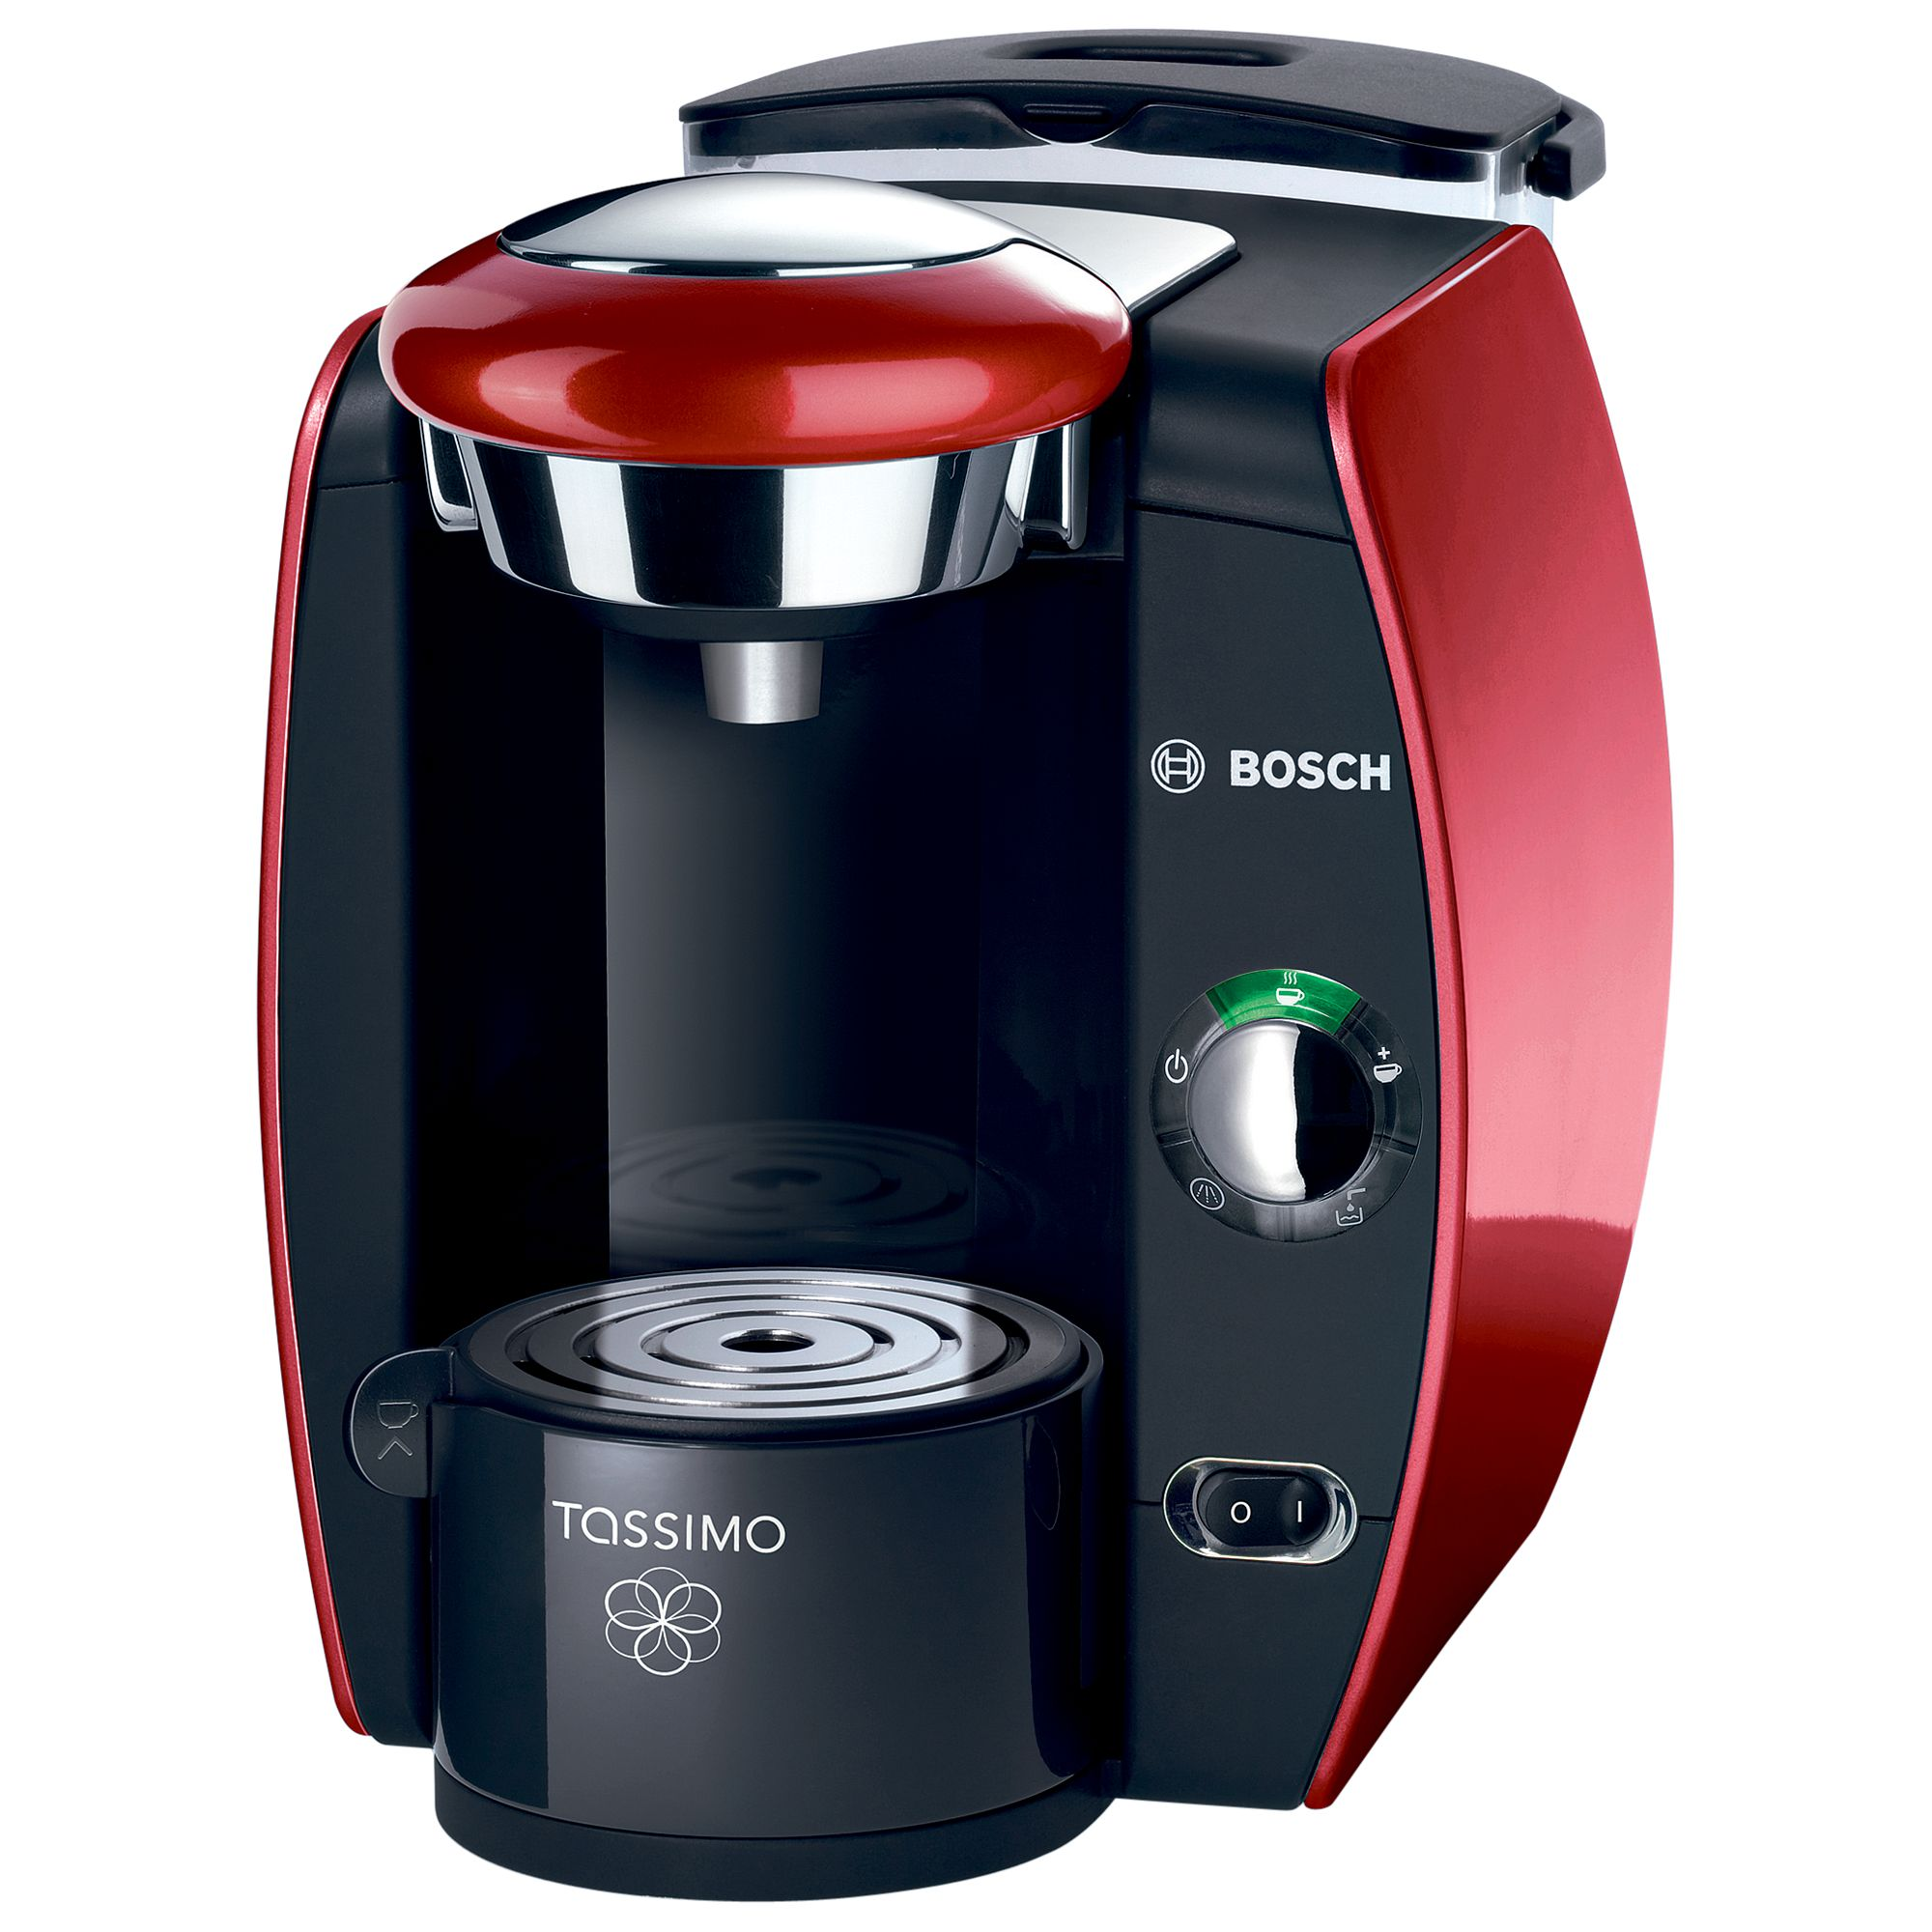 buy cheap bosch coffee maker tassimo compare coffee. Black Bedroom Furniture Sets. Home Design Ideas